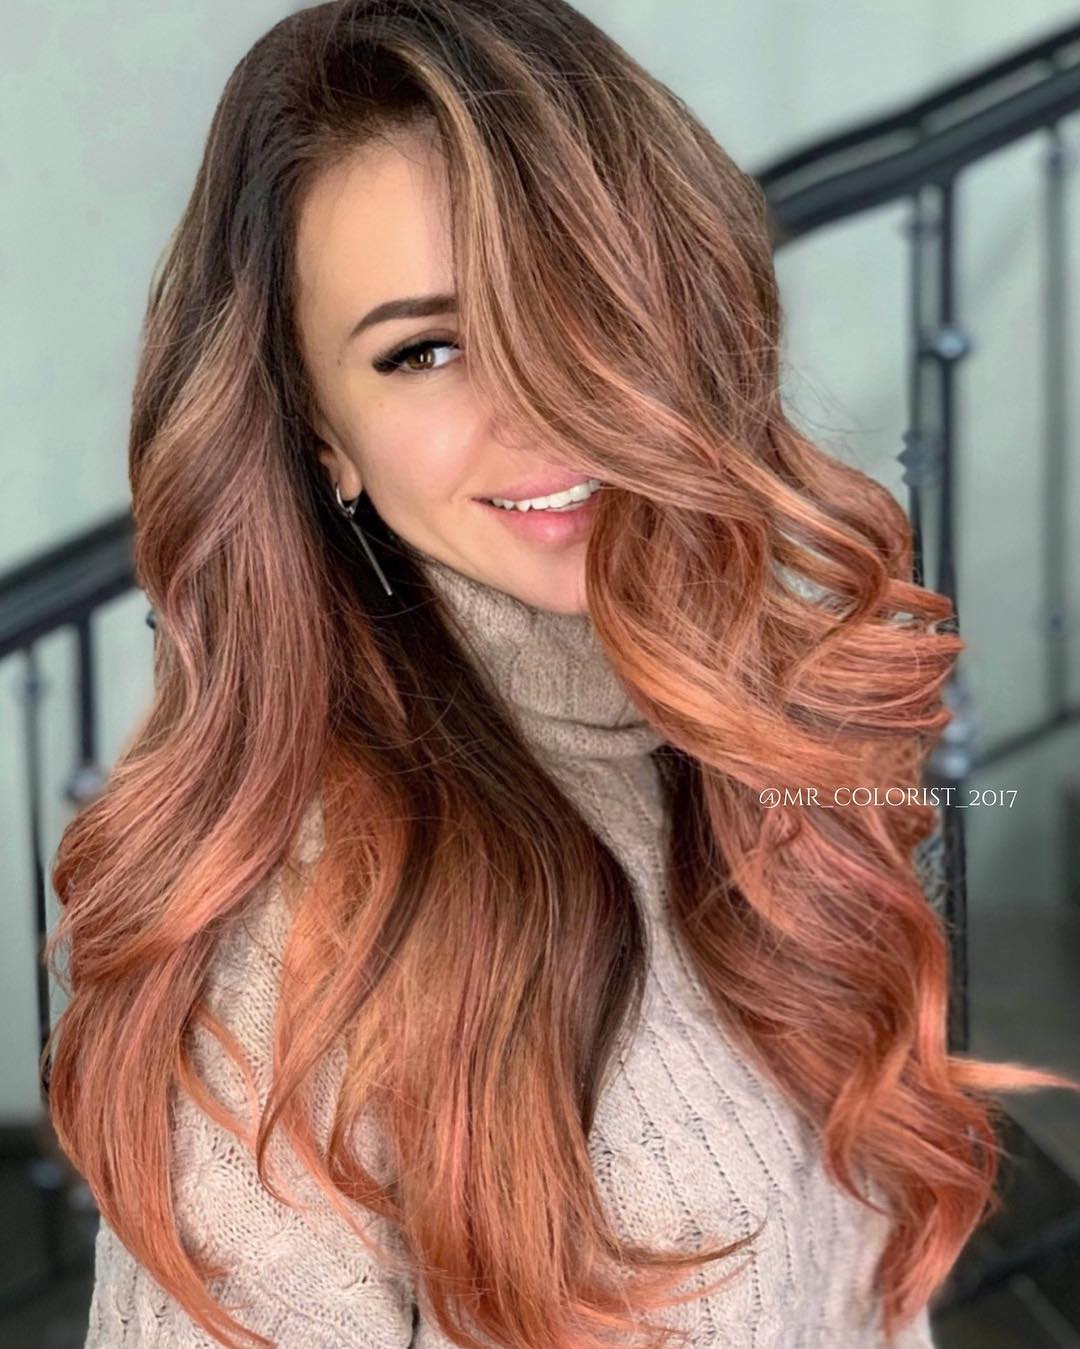 Best Hair Color for Hazel Eyes and Warm Skin Tone